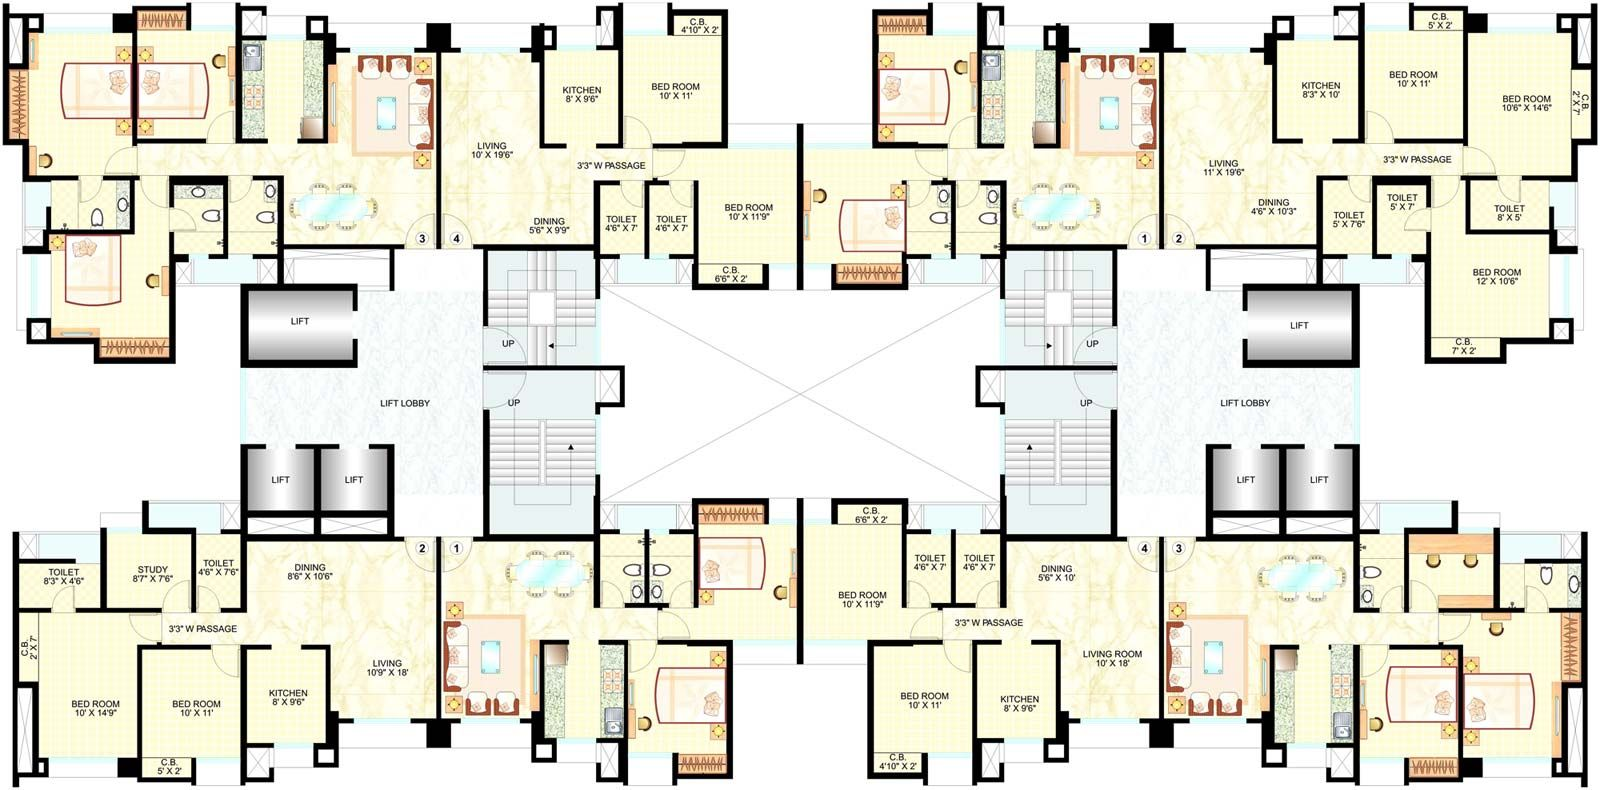 2 Bedroom Apartment Floor Plans 1015822 Decorating Ideas